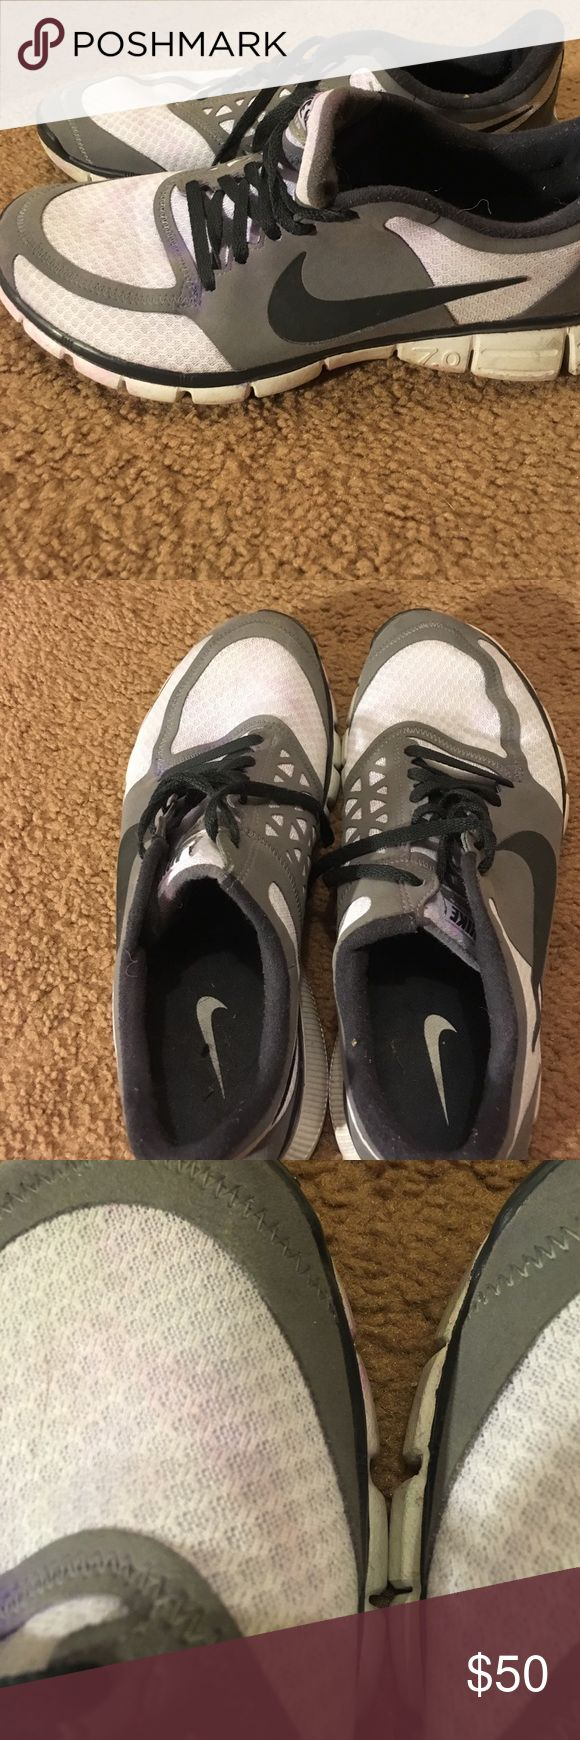 Men's Nike shoes size 10.5 Men's gray, white, and black Nike shoes. Gently worn but has some spots of discoloration. May come out if washed. Overall wearable and pretty good condition. Men's size 10.5 in us Nike Shoes Athletic Shoes